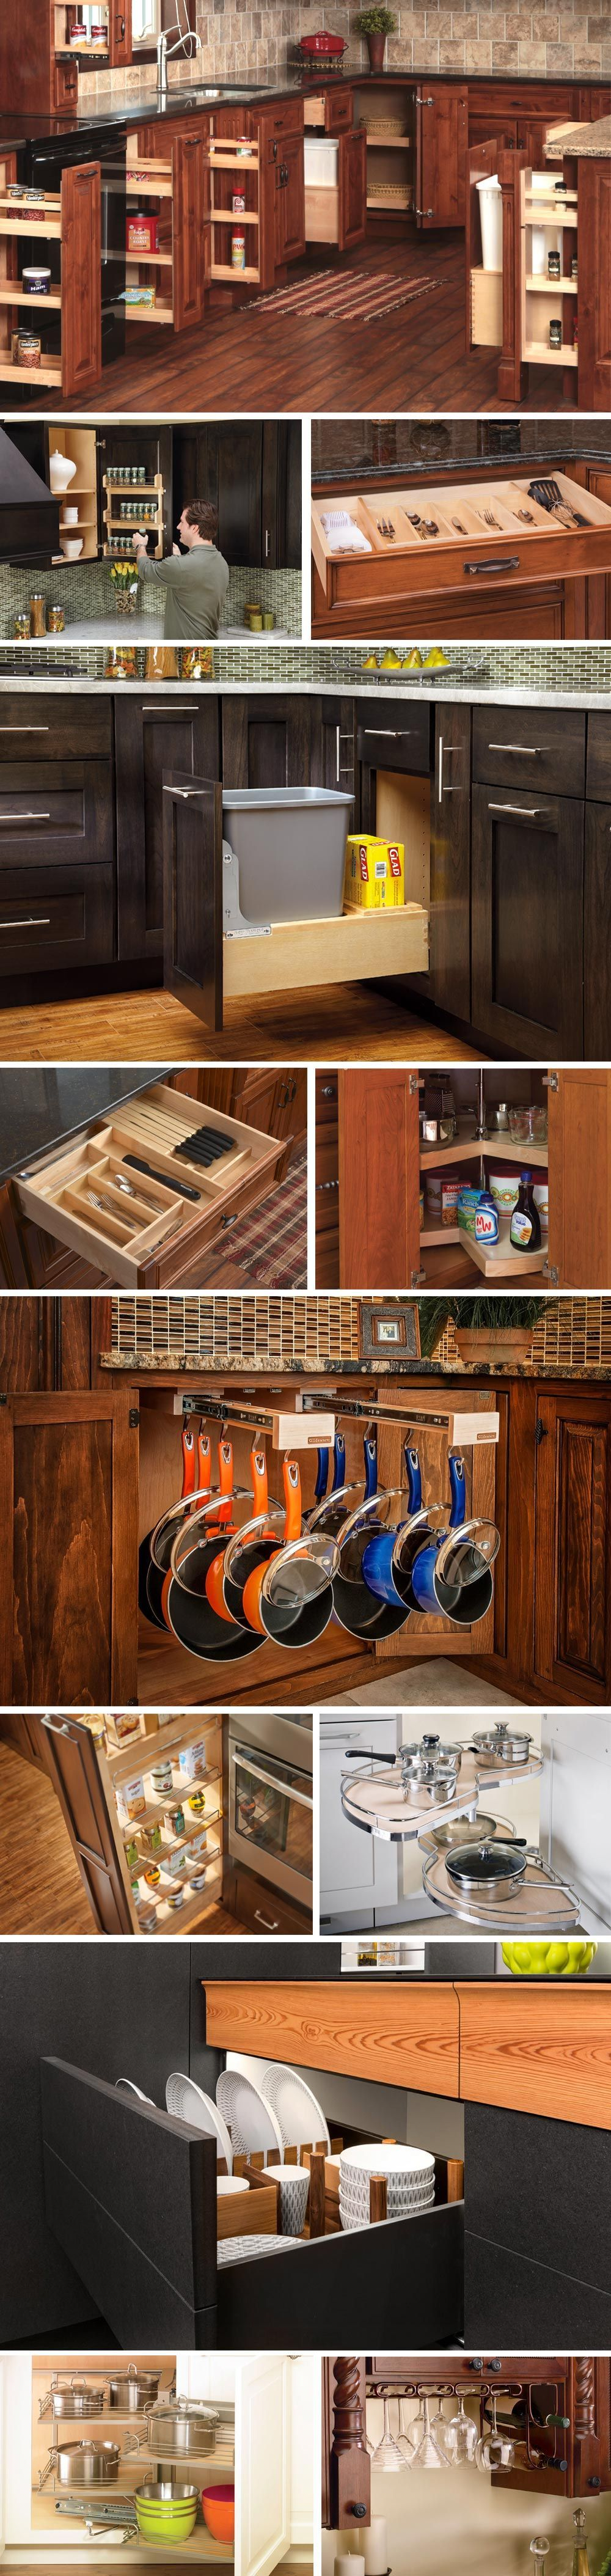 Kitchen Organizer Products At CabinetParts.com Upgrade Your Home With New  Kitchen Organizers And More